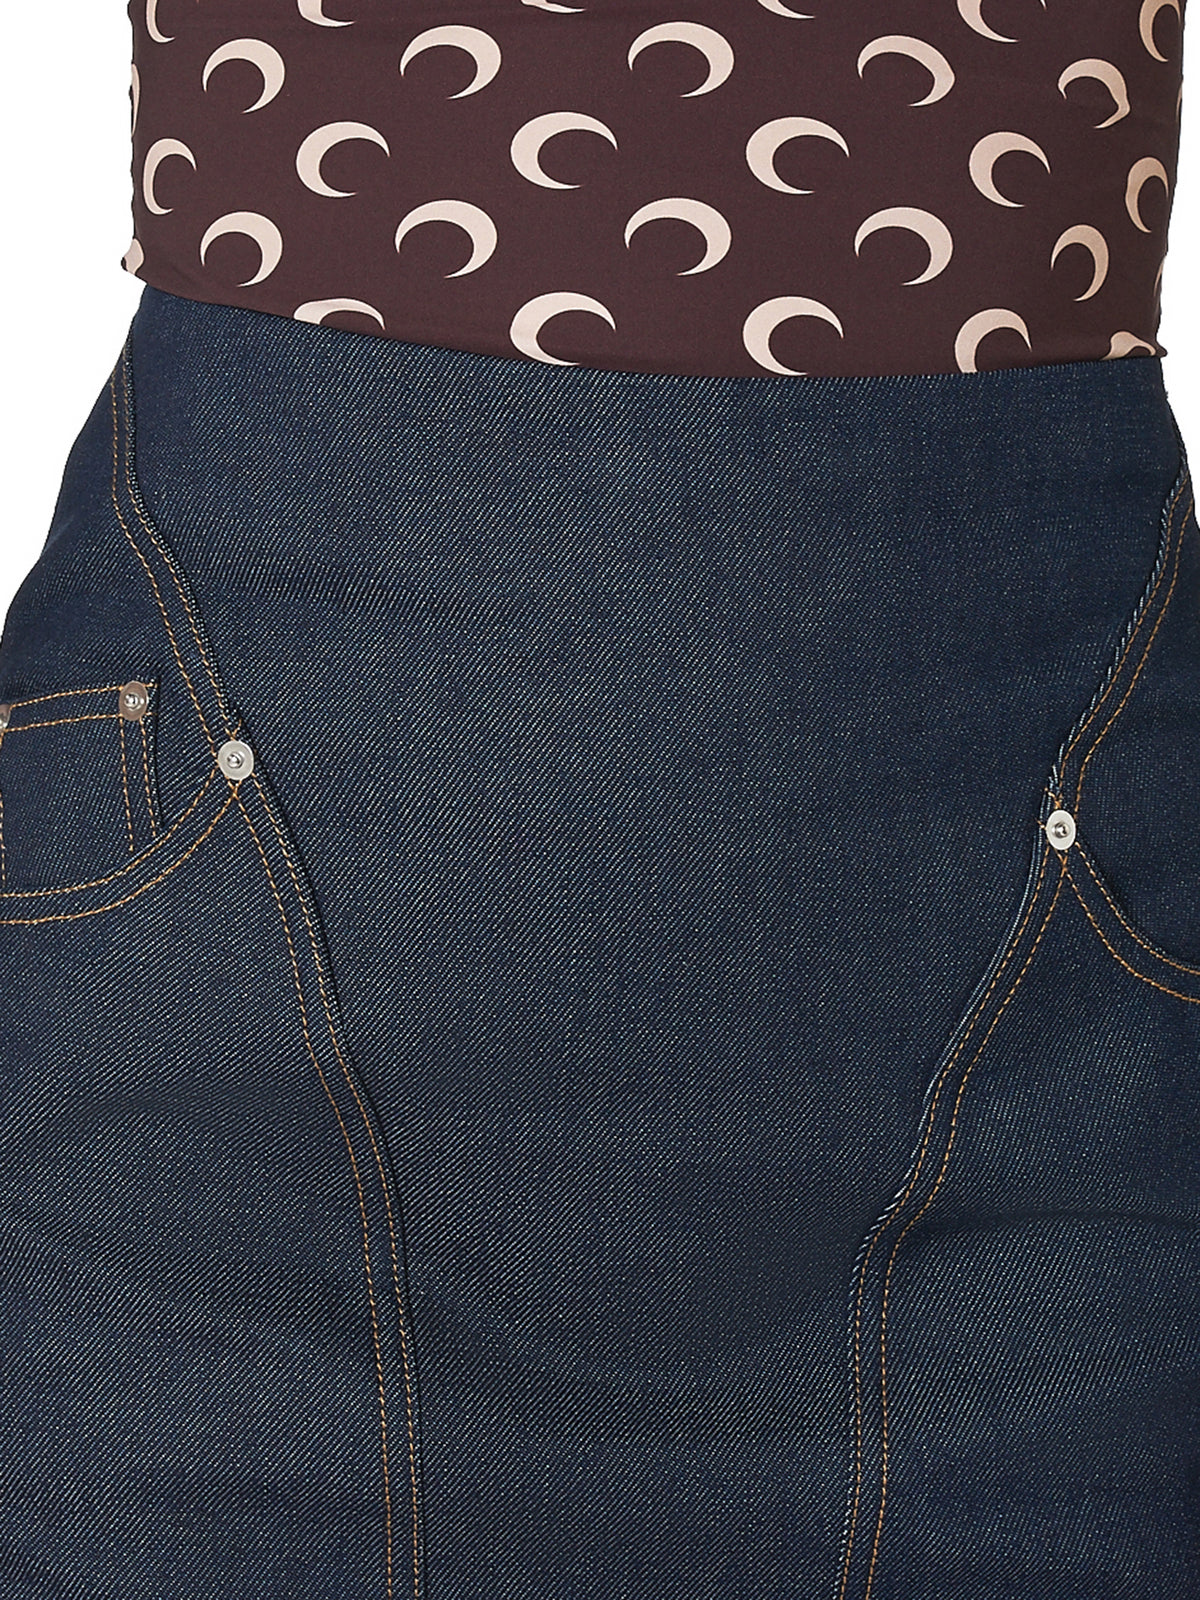 Marine Serre Denim Skirt - Hlorenzo Detail 2